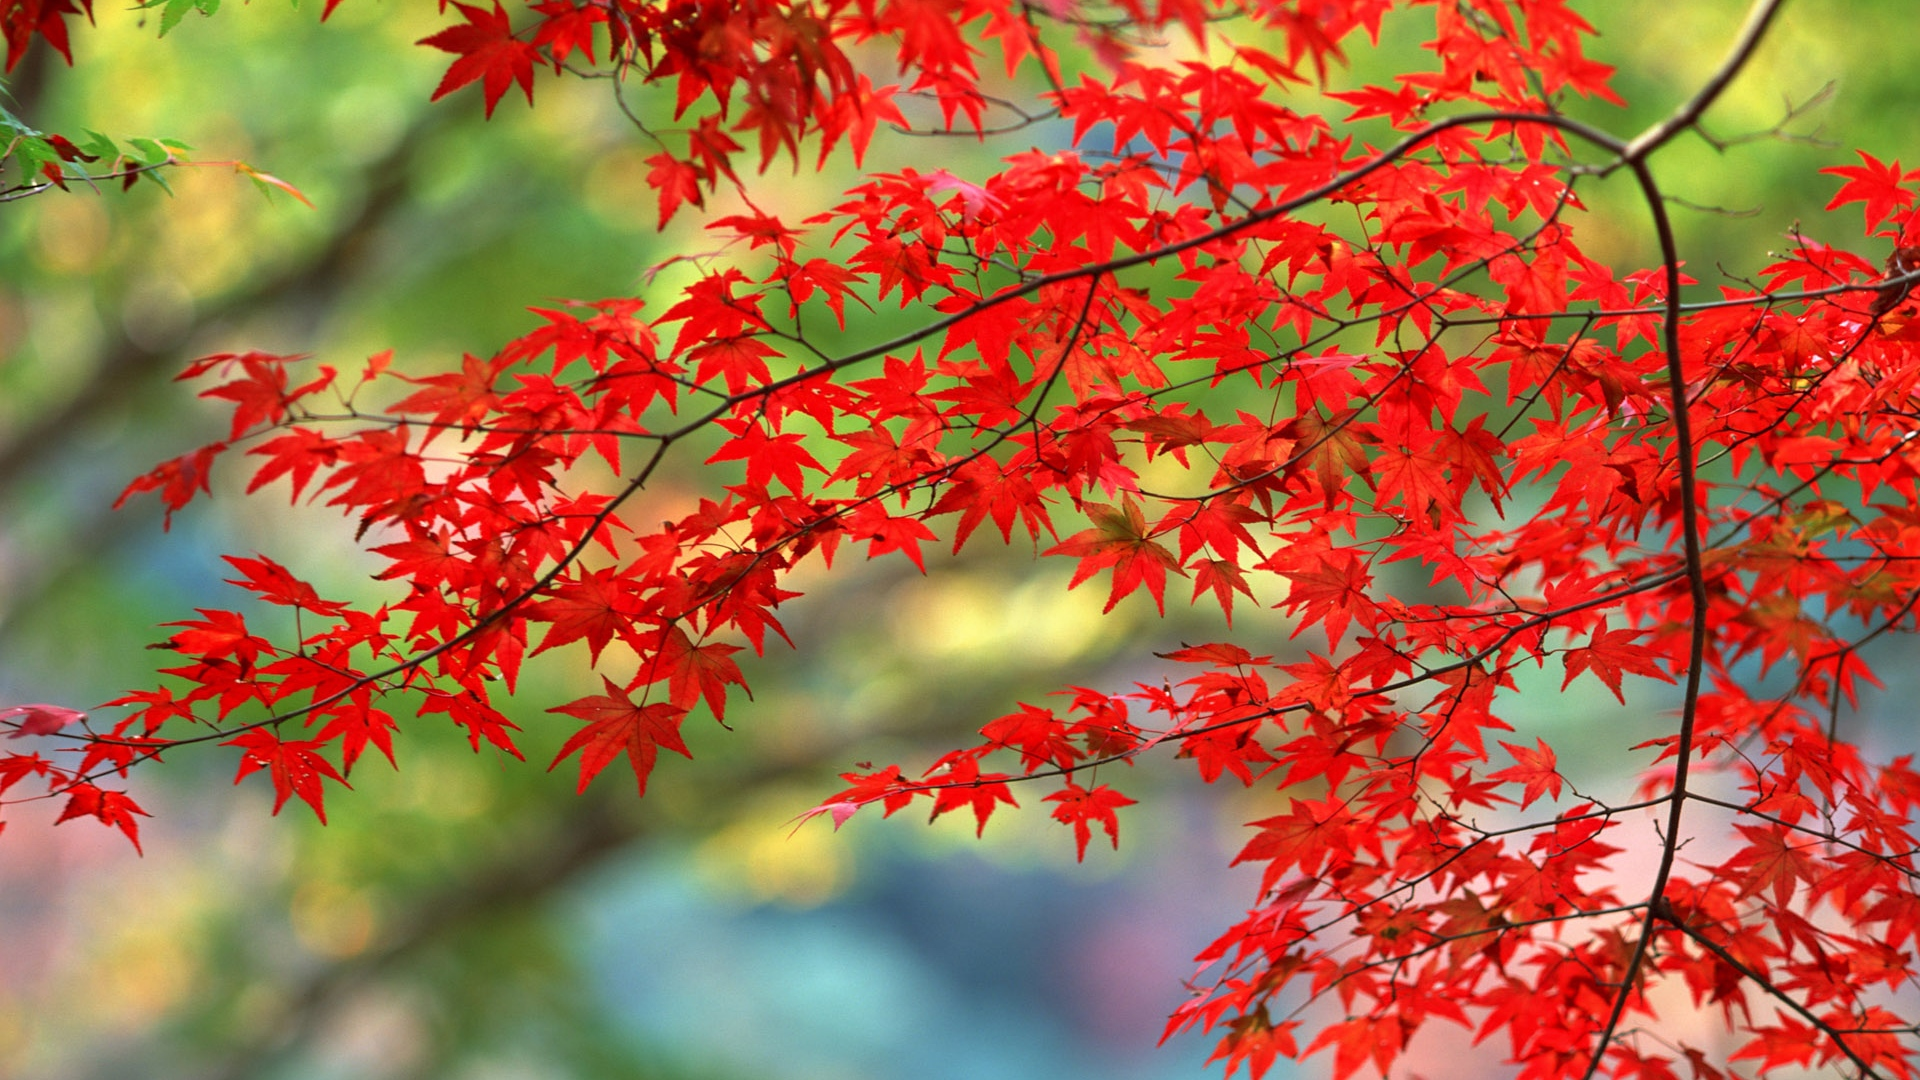 Download Wallpaper 1920x1080 leaves, autumn, nature